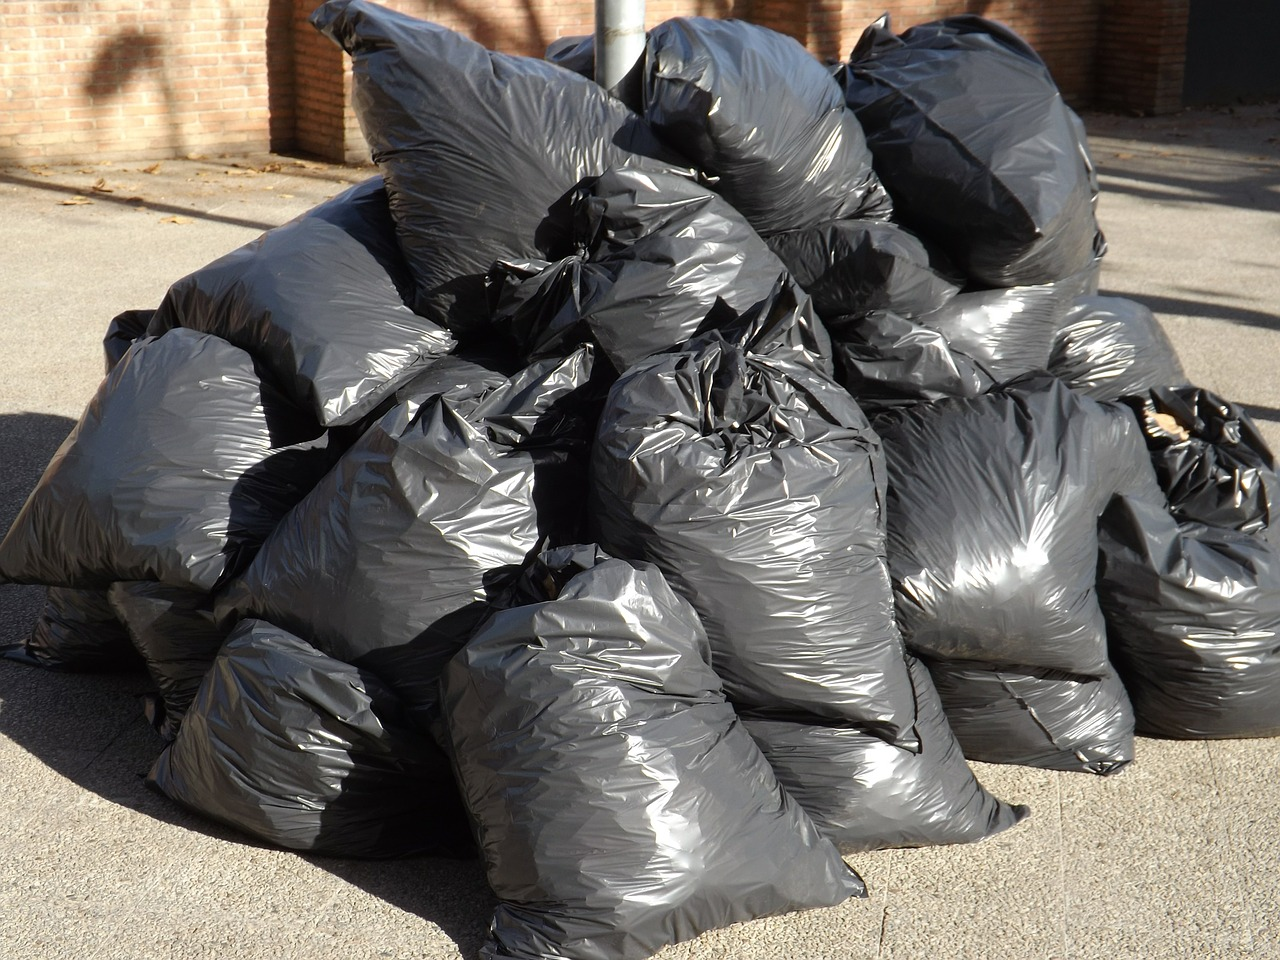 3 Handy Uses for Bin Bags on Your Moving Day